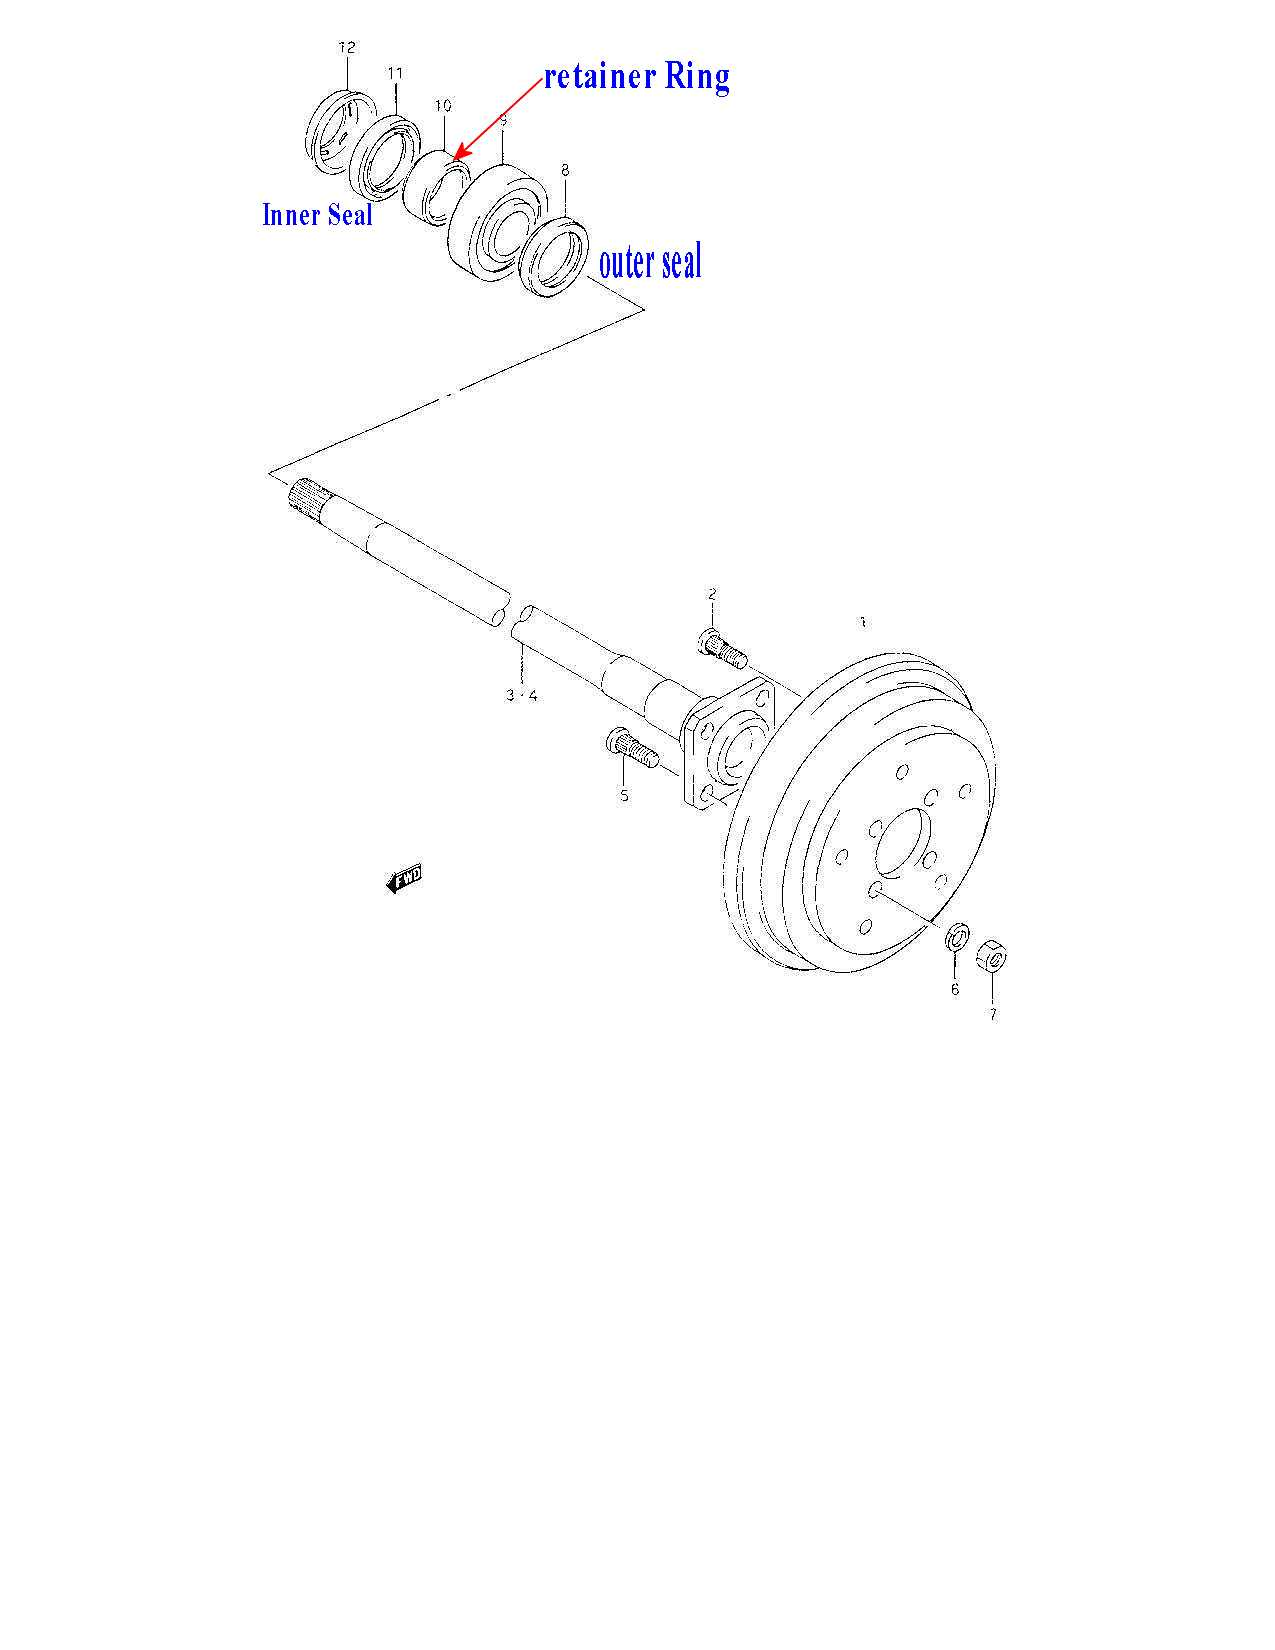 P 0996b43f80cb1b4f together with Gm L4 Engine as well Gm L4 Engine further Gm Parts Catalog Service Html together with 2006 Gmc Yukon Timing Belt Replacement. on 2005 chevrolet aveo head gasket